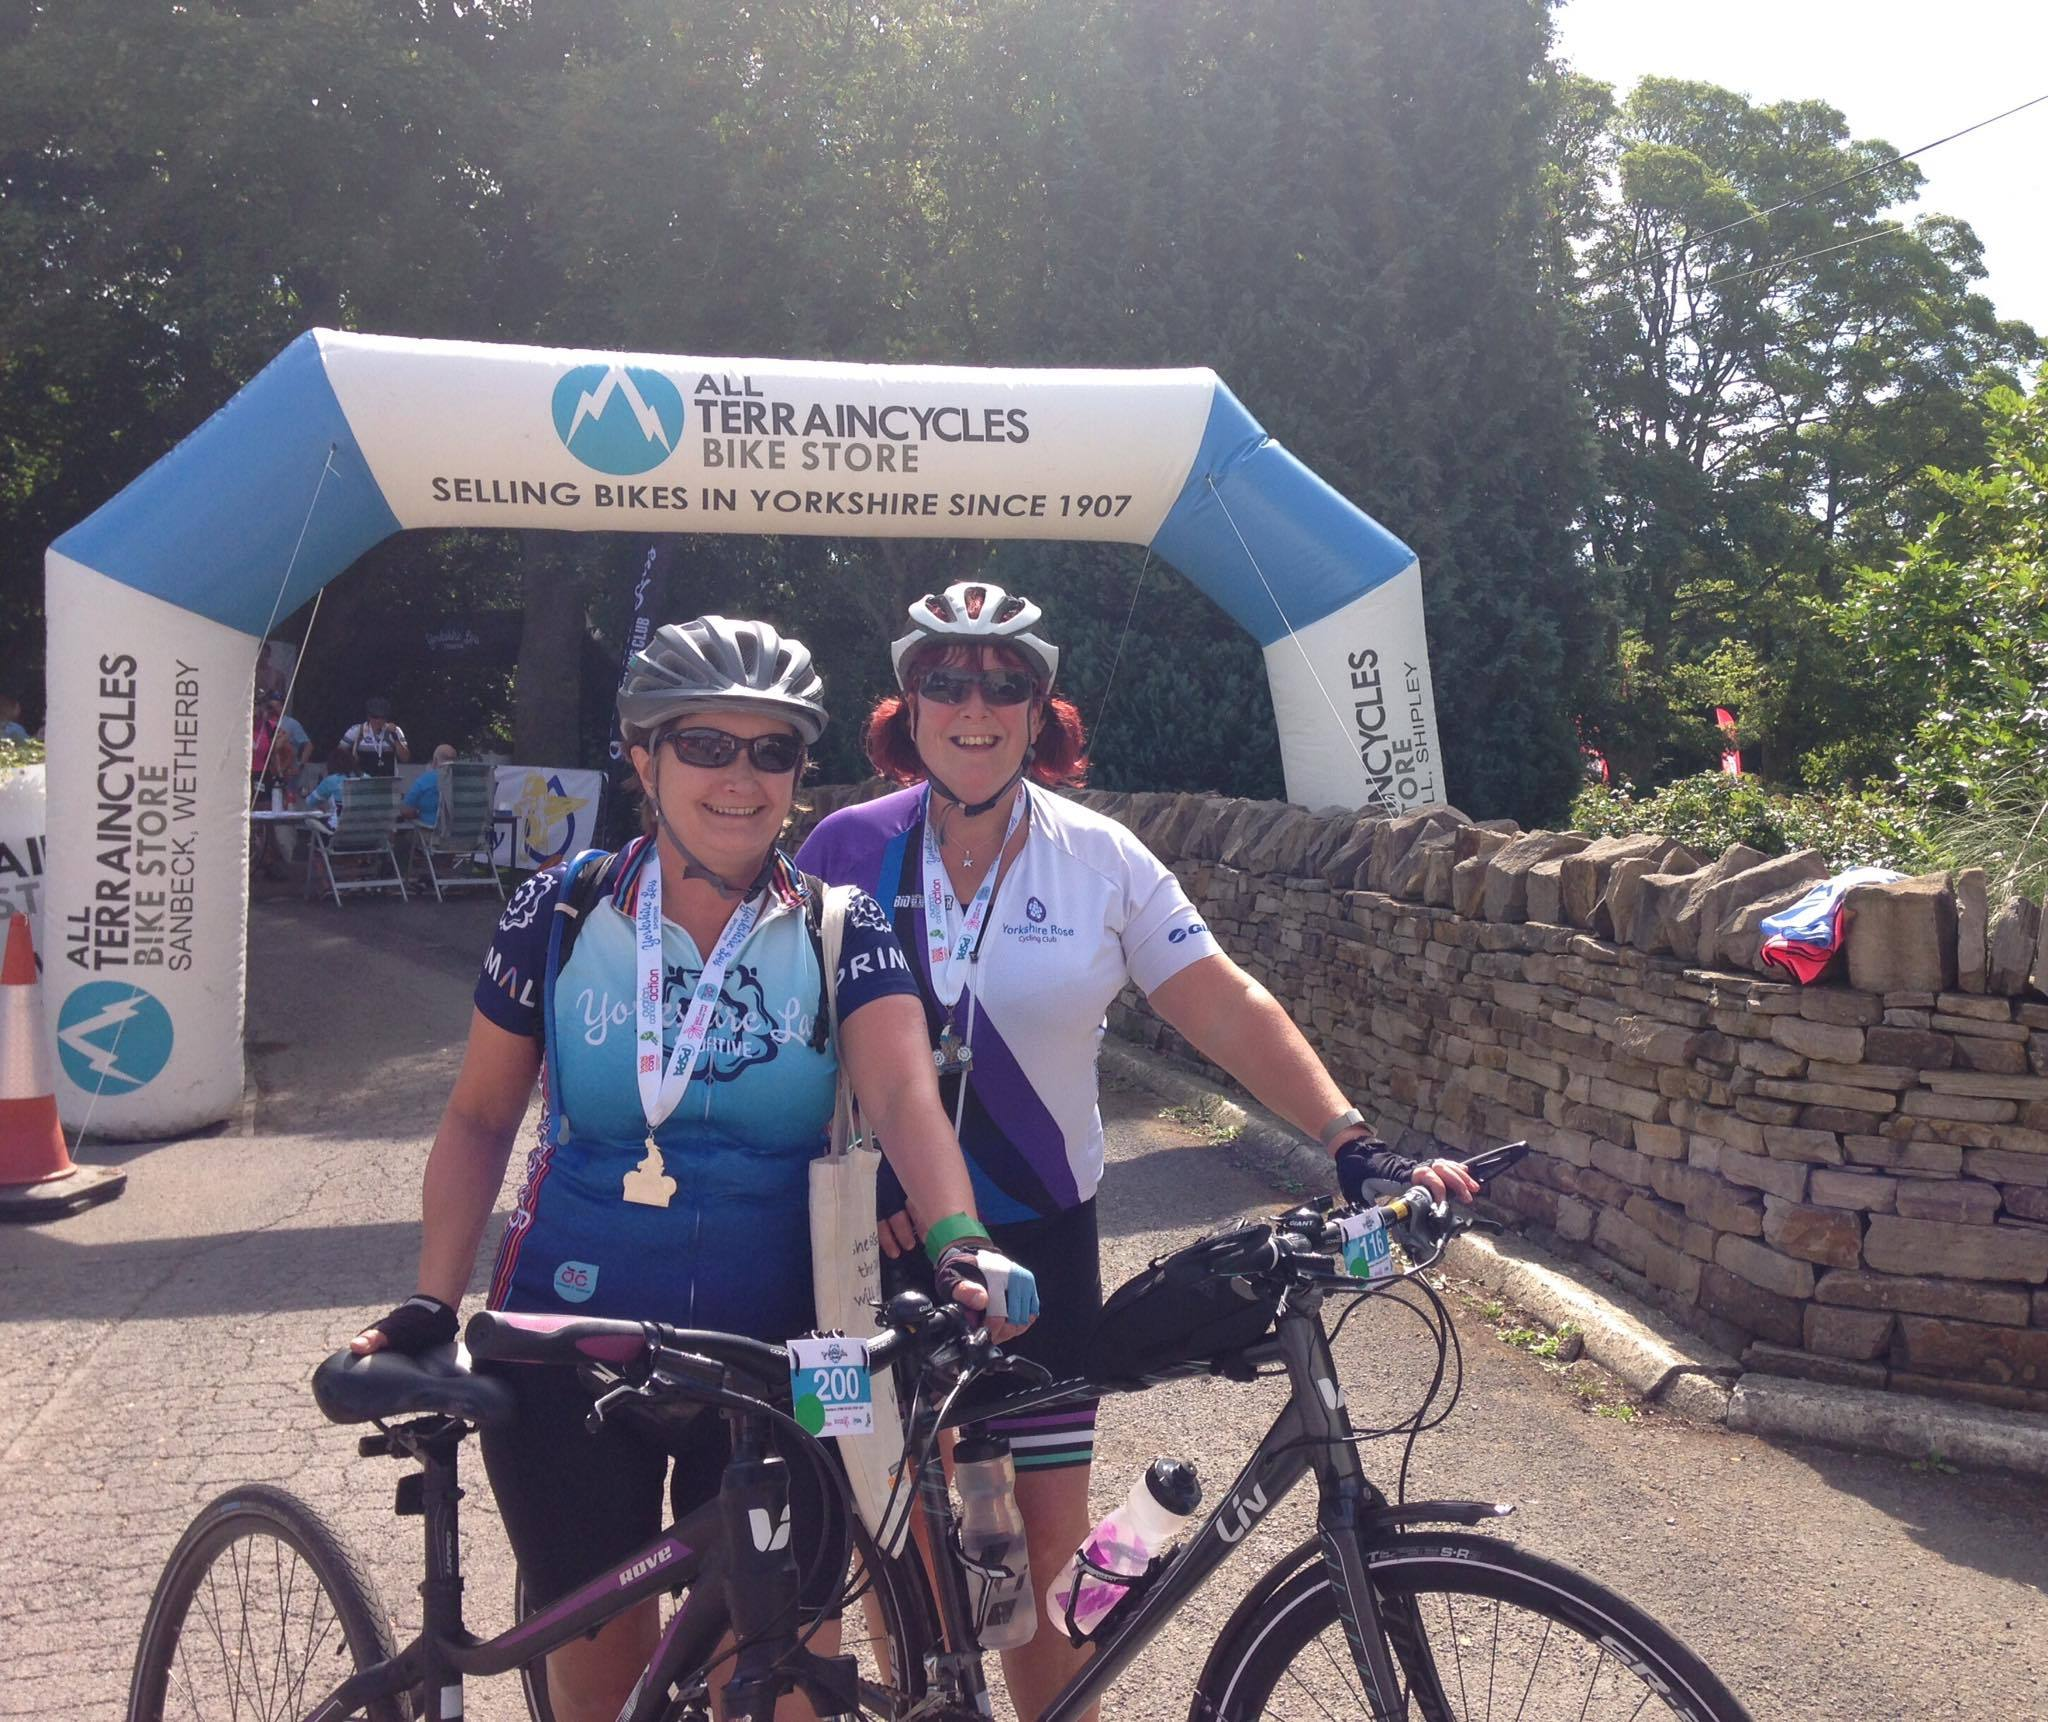 Entrants in this year's Yorkshire Lass Cycling Club sportive enjoyed three new routes